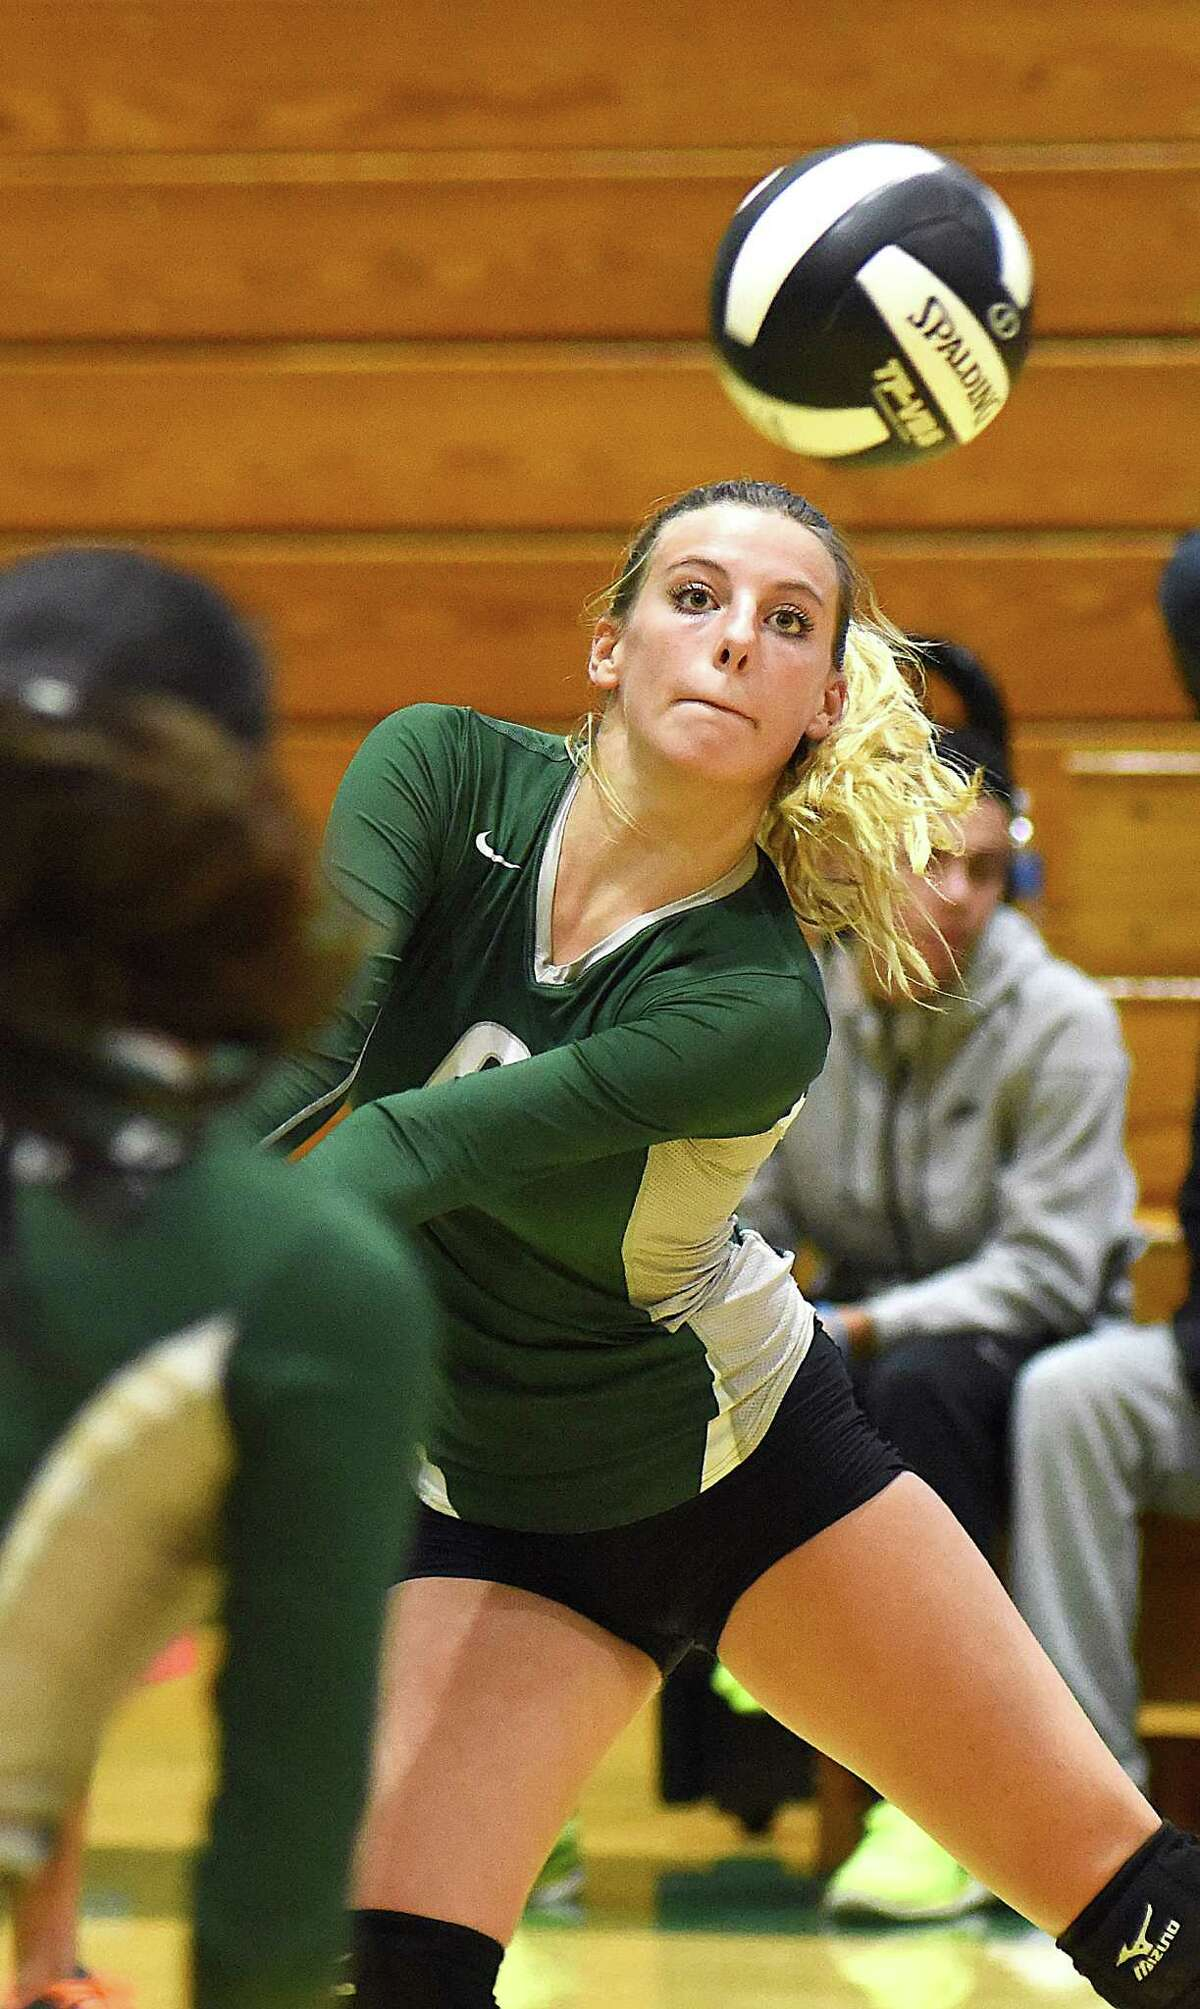 Amanda Beckwith of Norwalk keeps her eye on the ball as she prepares to bump it to her setter during Monday's non-conference volleyball match against Bunnell at Scarso Gym in Norwalk.